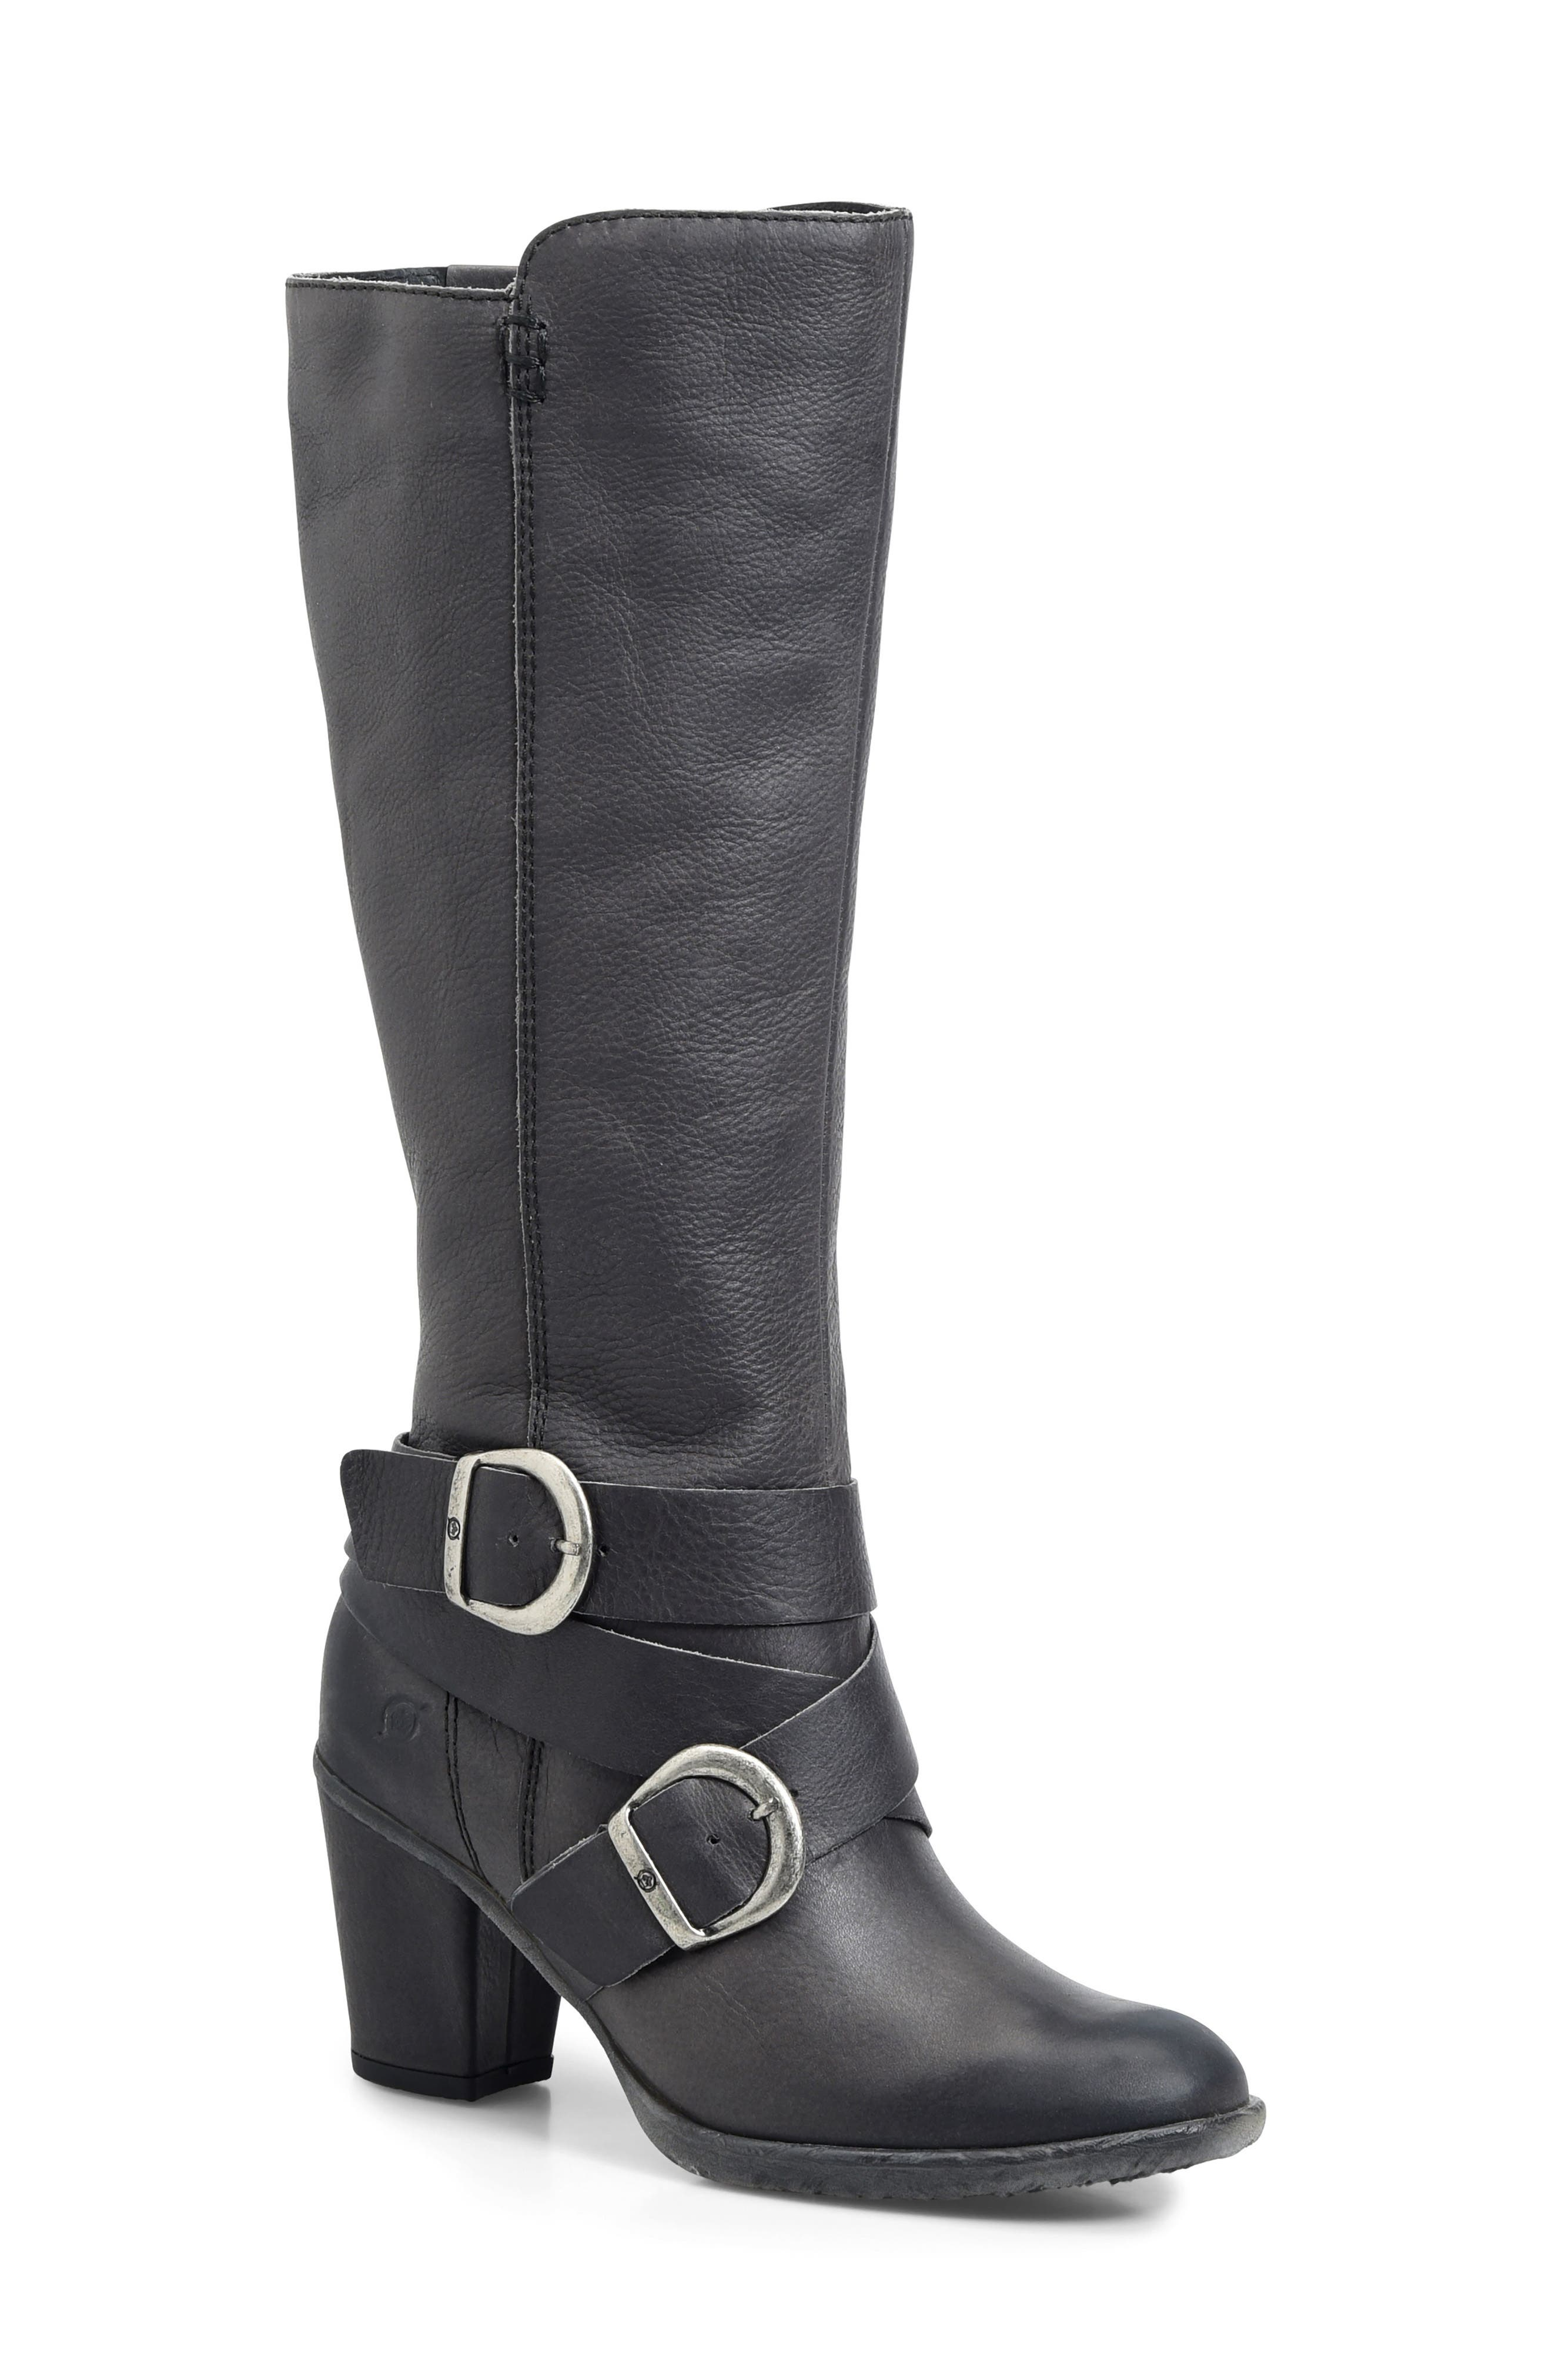 Alternate Image 1 Selected - Børn Cresent Knee High Boot (Women)